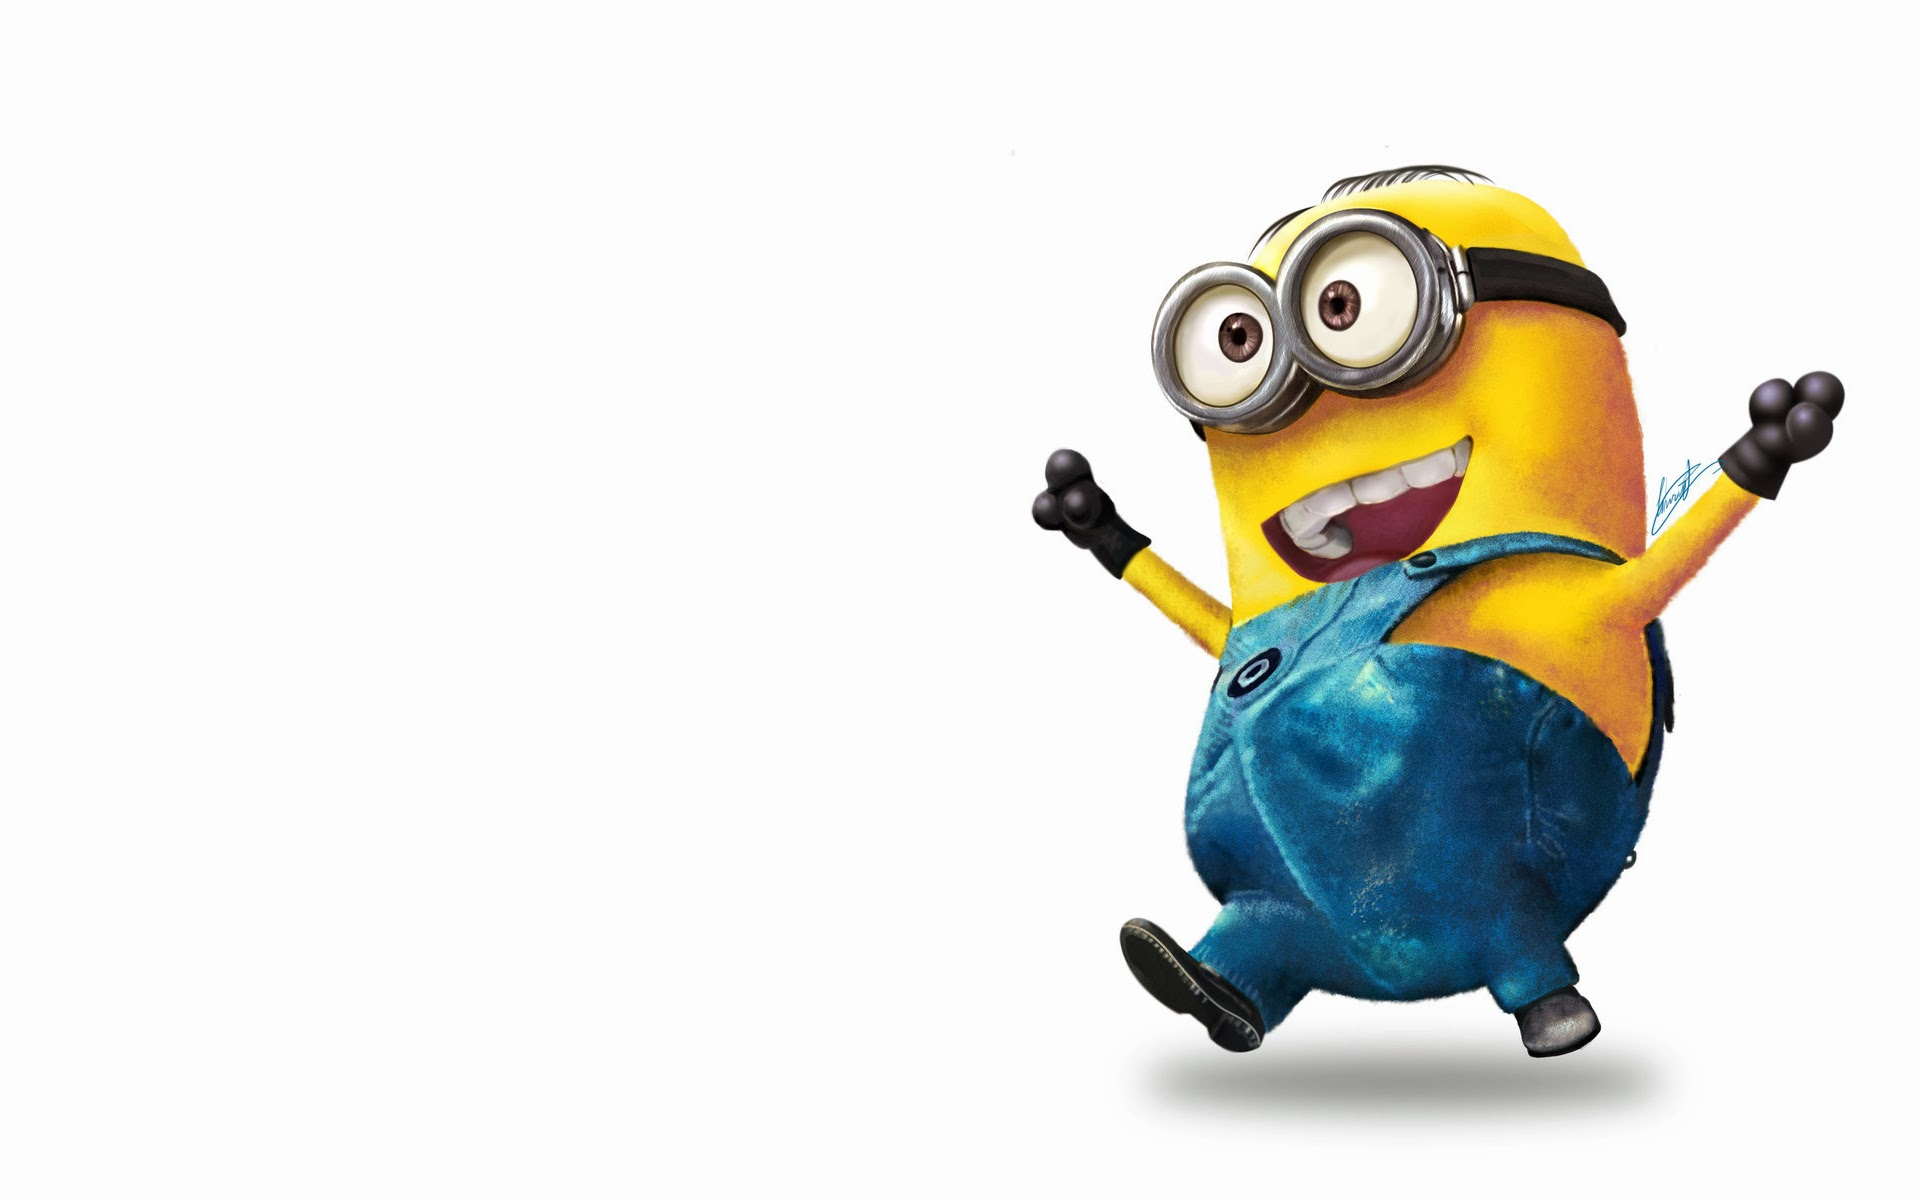 Cute Collection Of Minions Movie 2015 Desktop Backgrounds 1920x1200